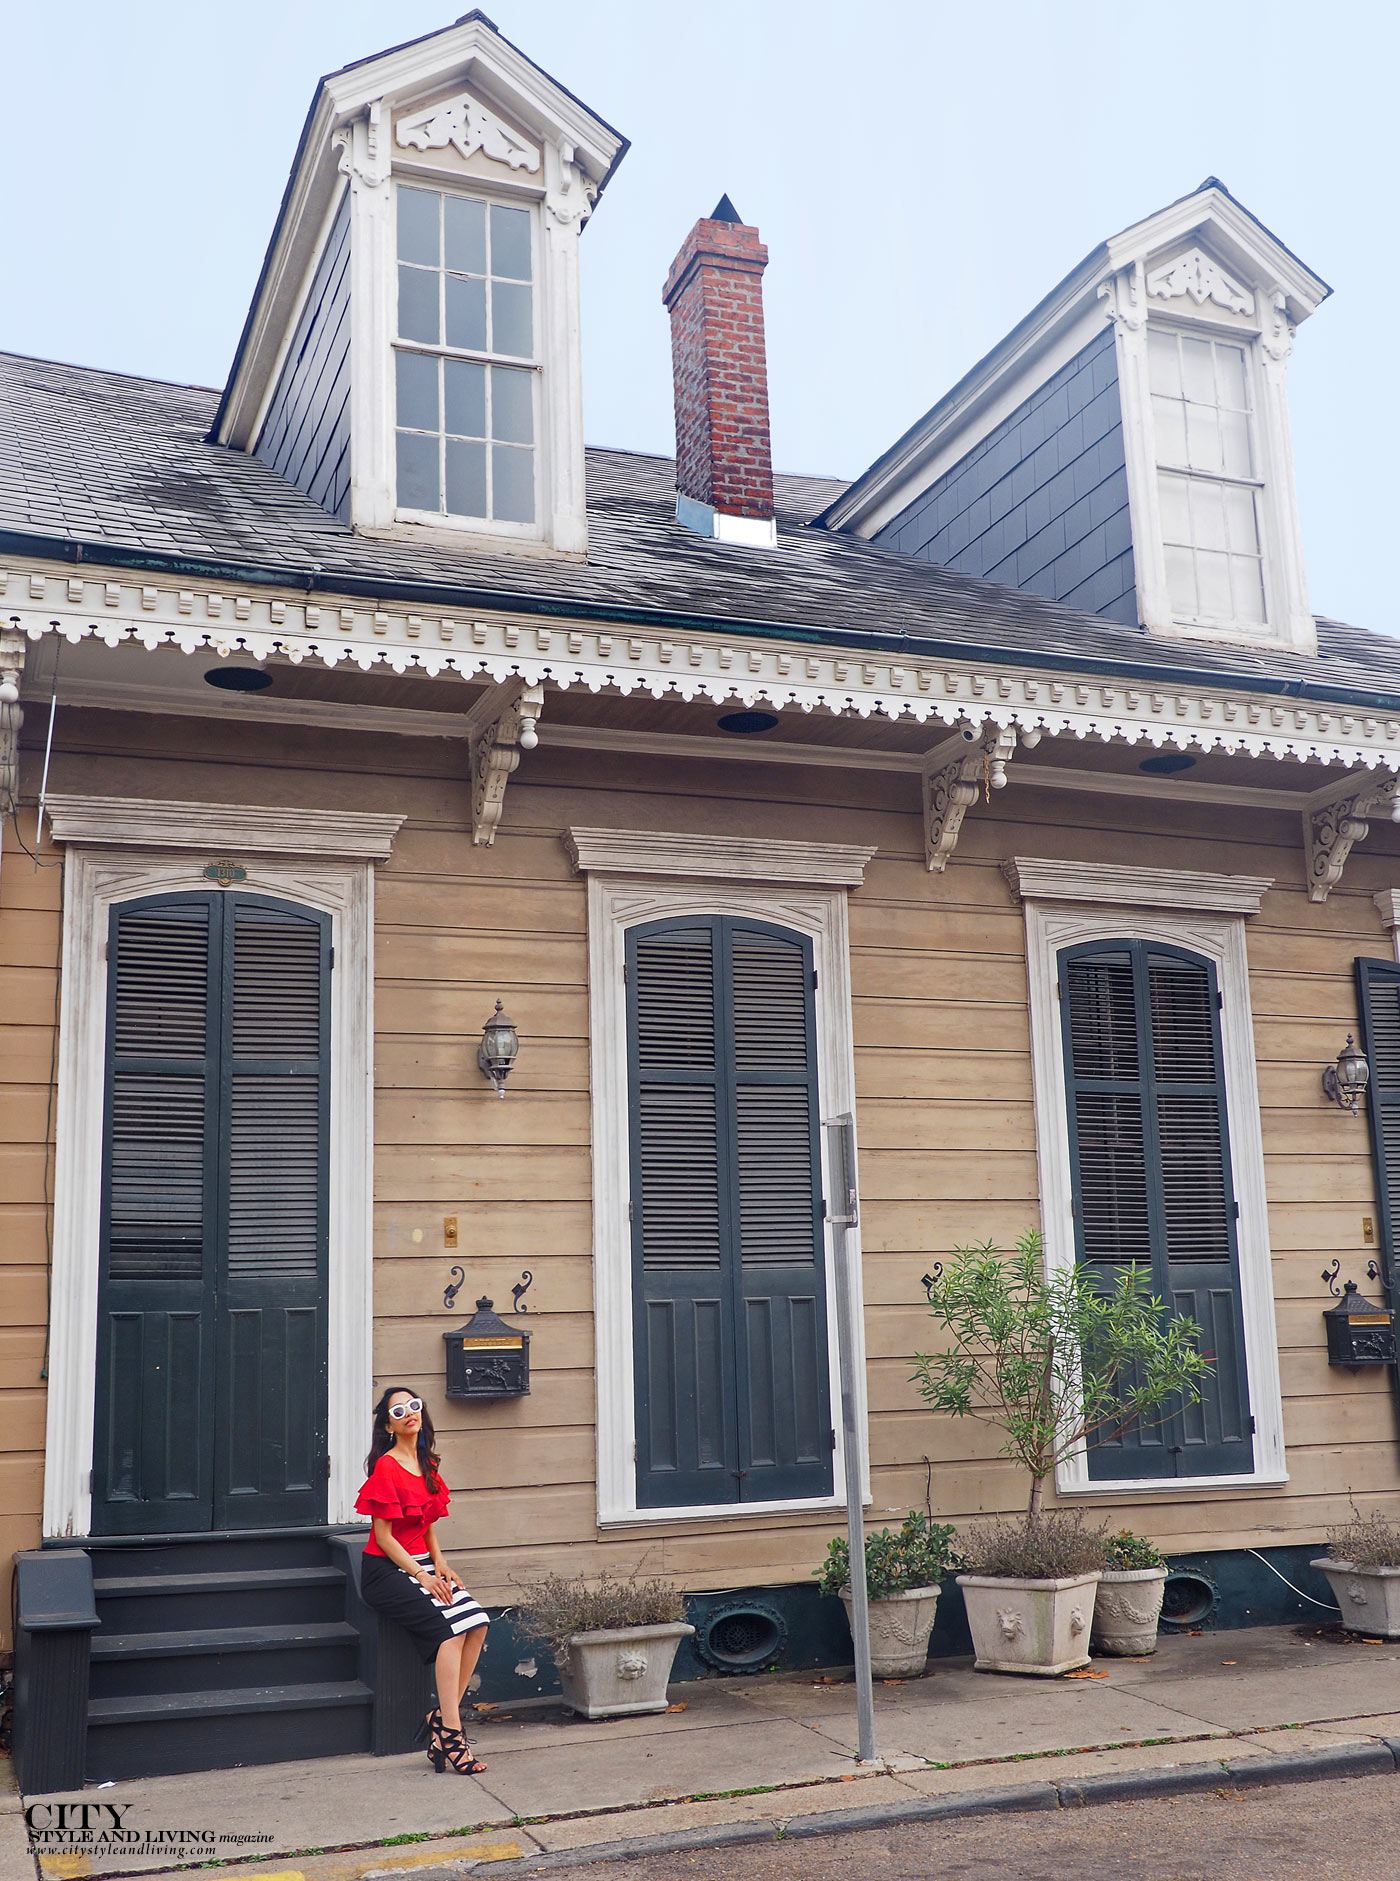 City style and living magazine The Editors Notebook style fashion blogger Shivana Maharaj french quarter new orleans ruffle top and striped skirt architecture shotgun house